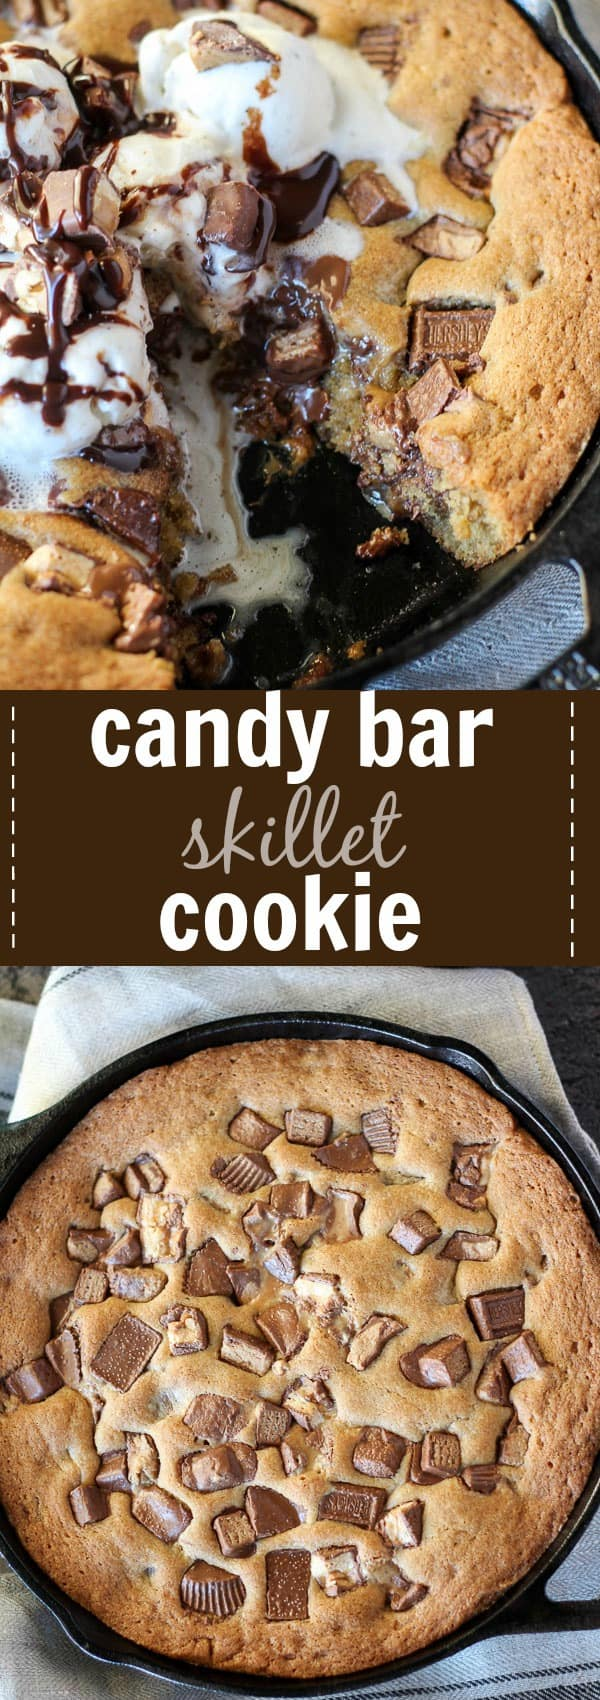 Candy Bar Skillet Cookie - A soft and gooey deep dish cookie baked in a skillet and loaded with your favorite candy bars! Serve warm with ice cream and hot fudge sauce.